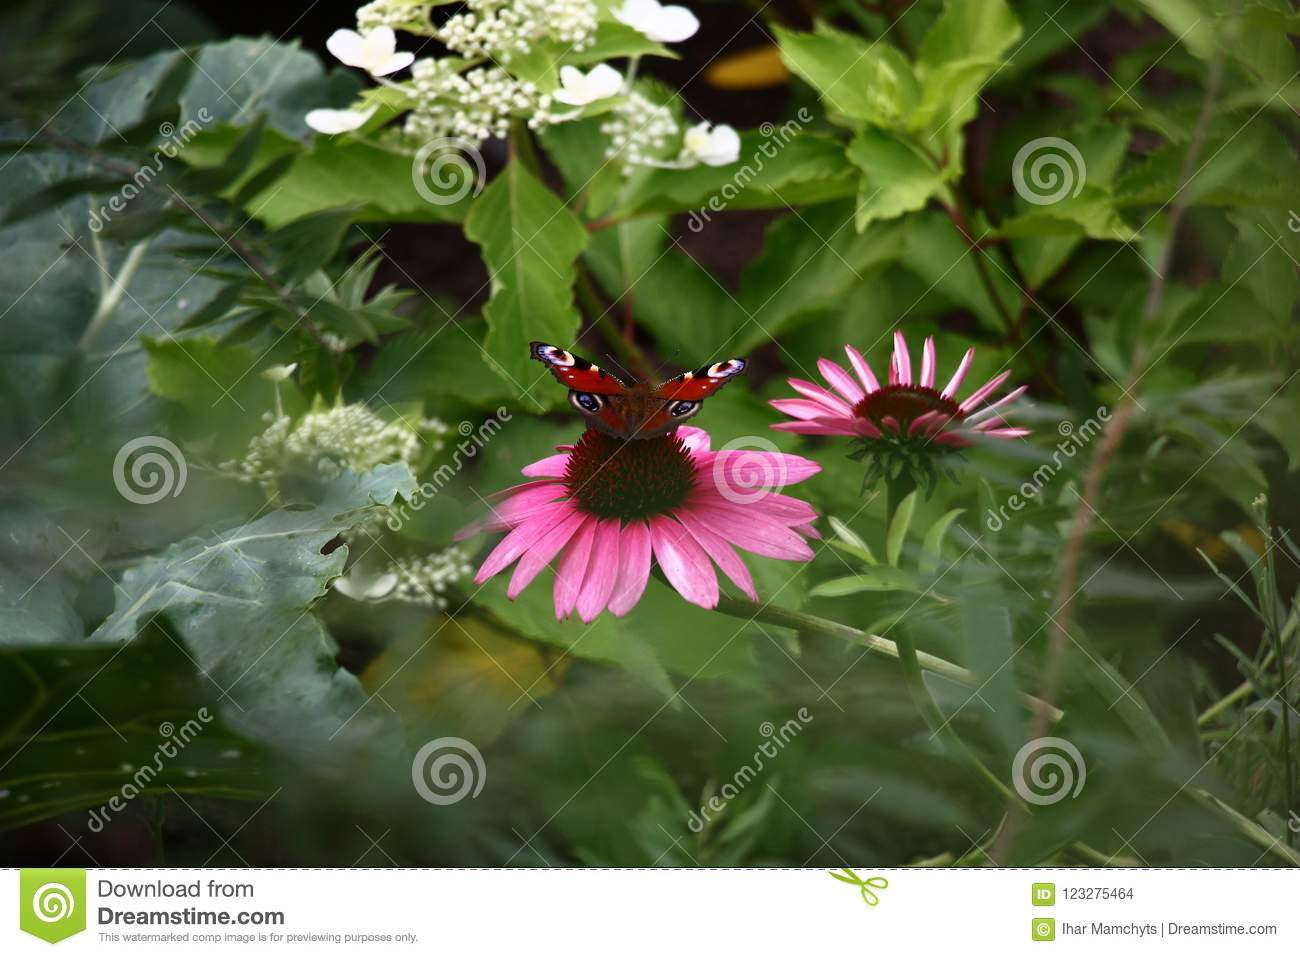 Butterfly and echinacea.